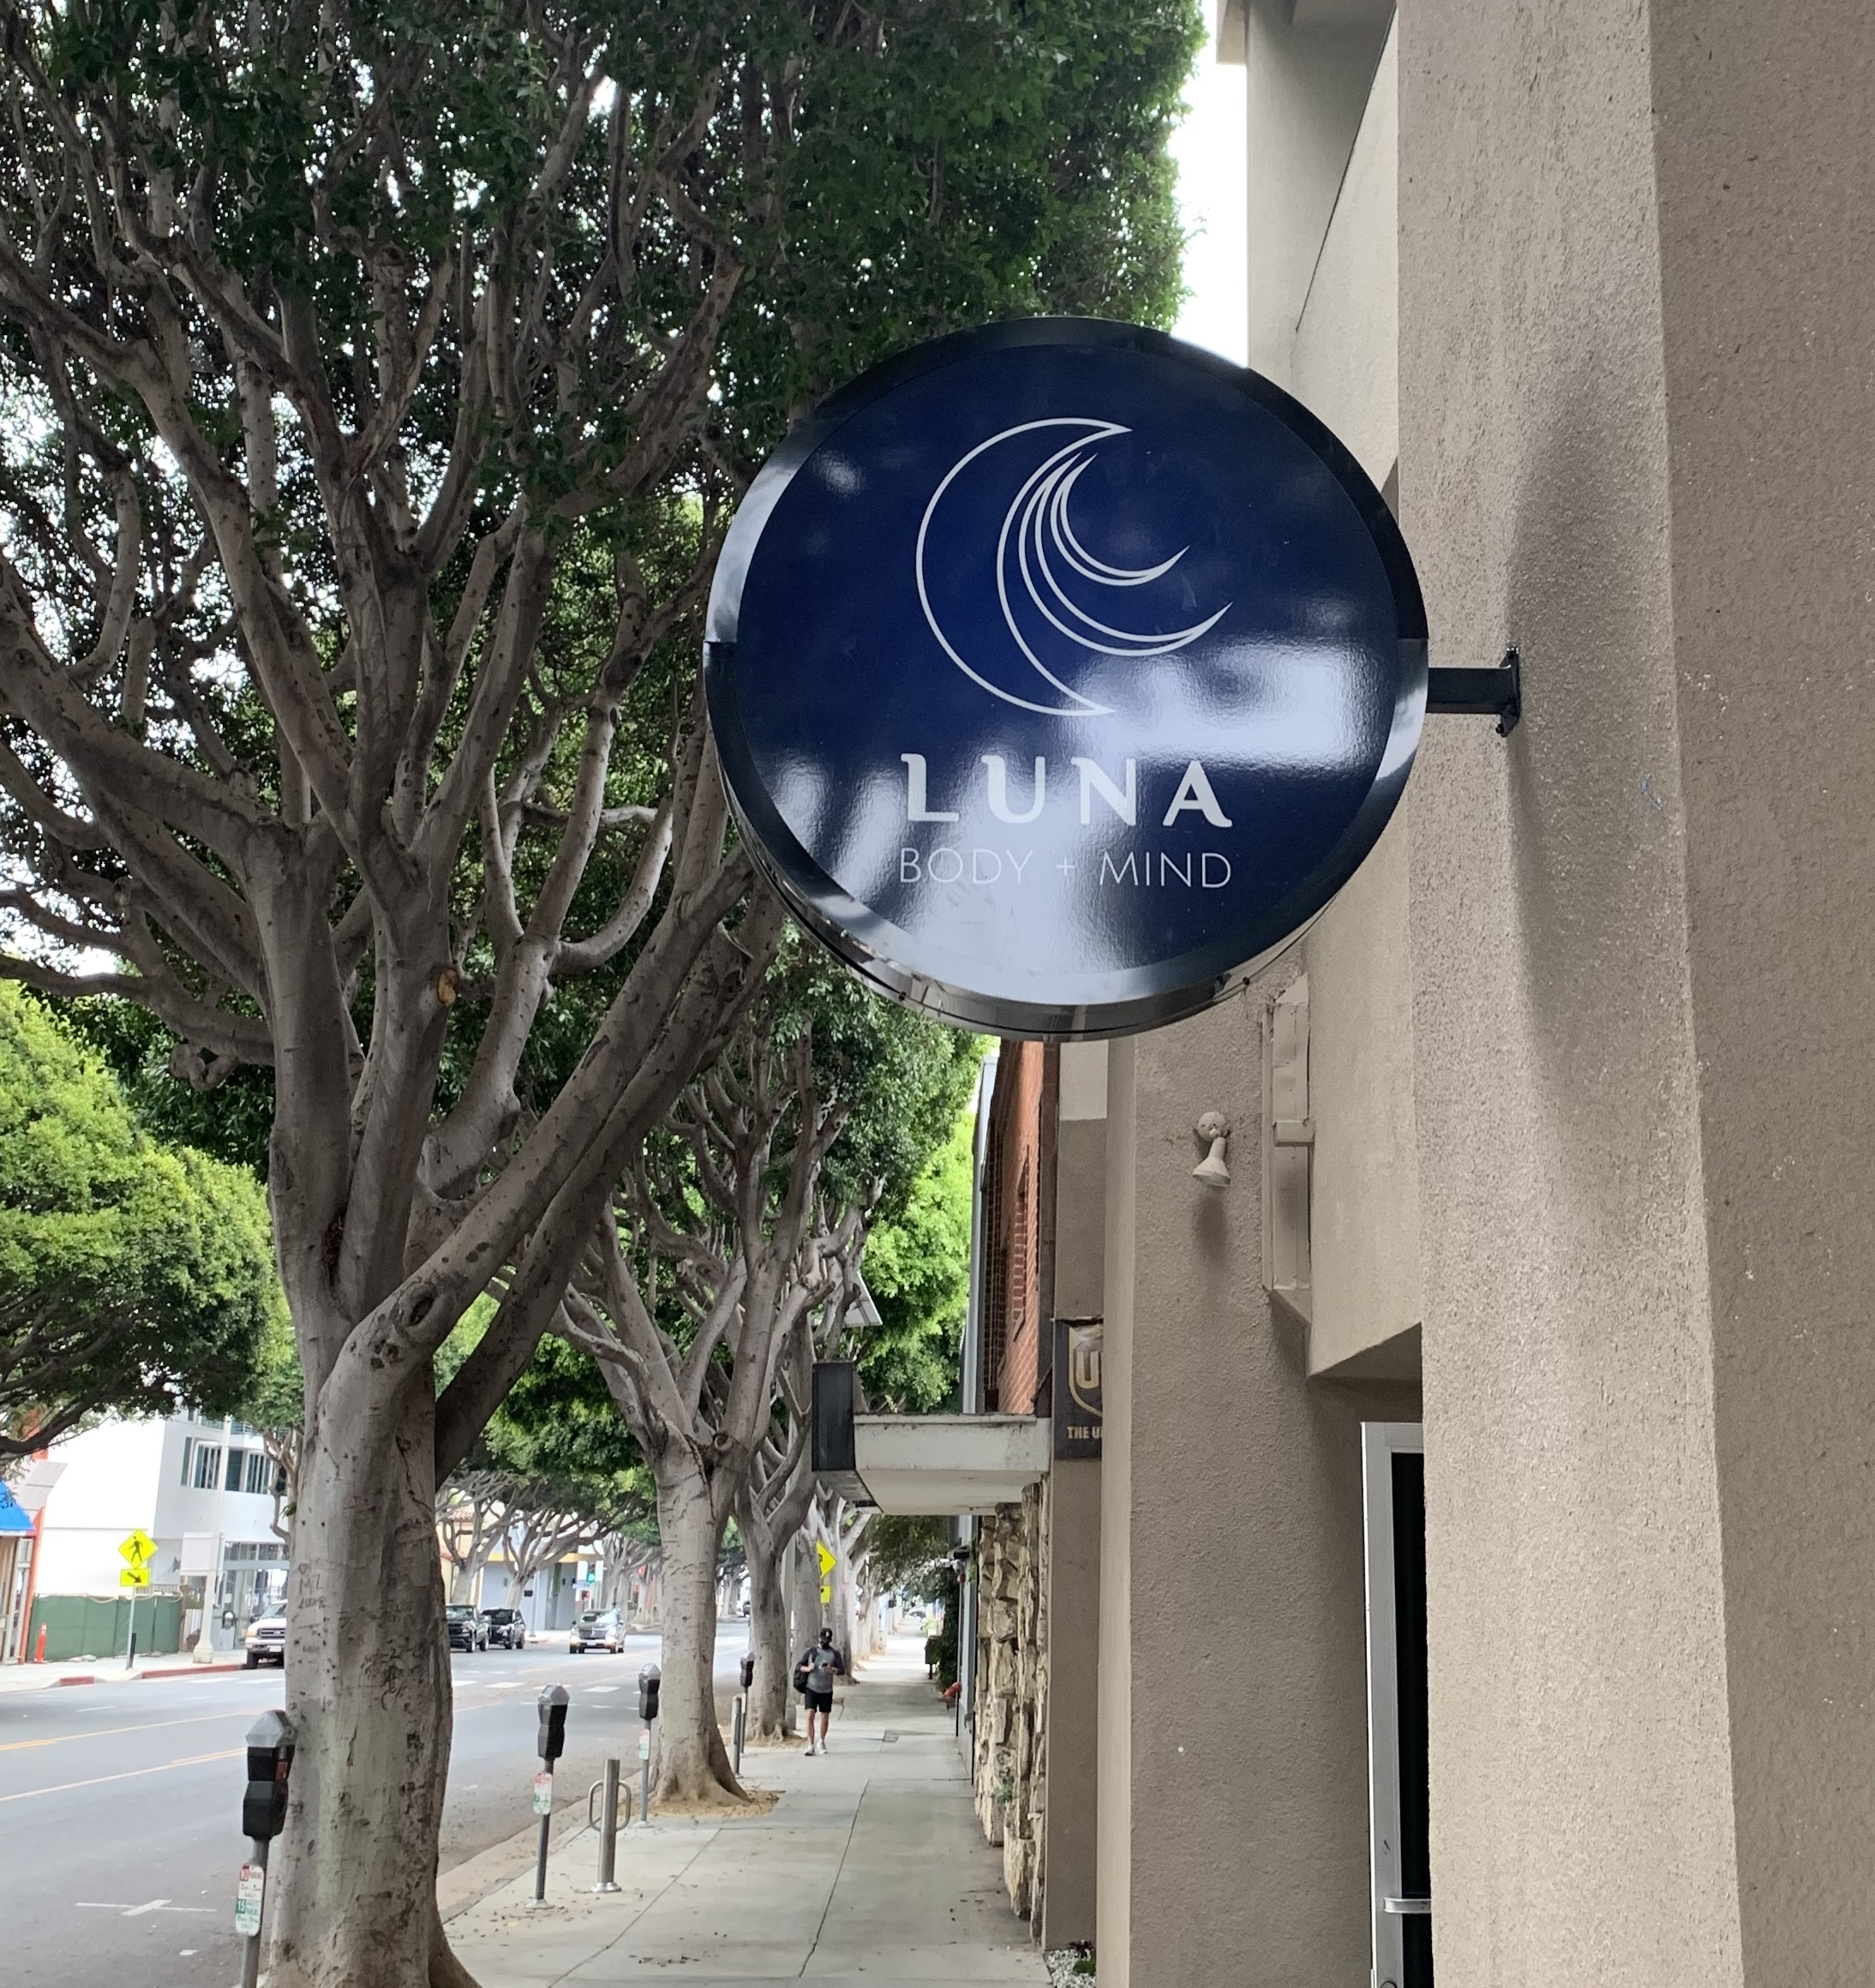 Health spas, salons and clinics need to have good-looking signage that reflects their services. Like this blade sign for Luna Wellness.